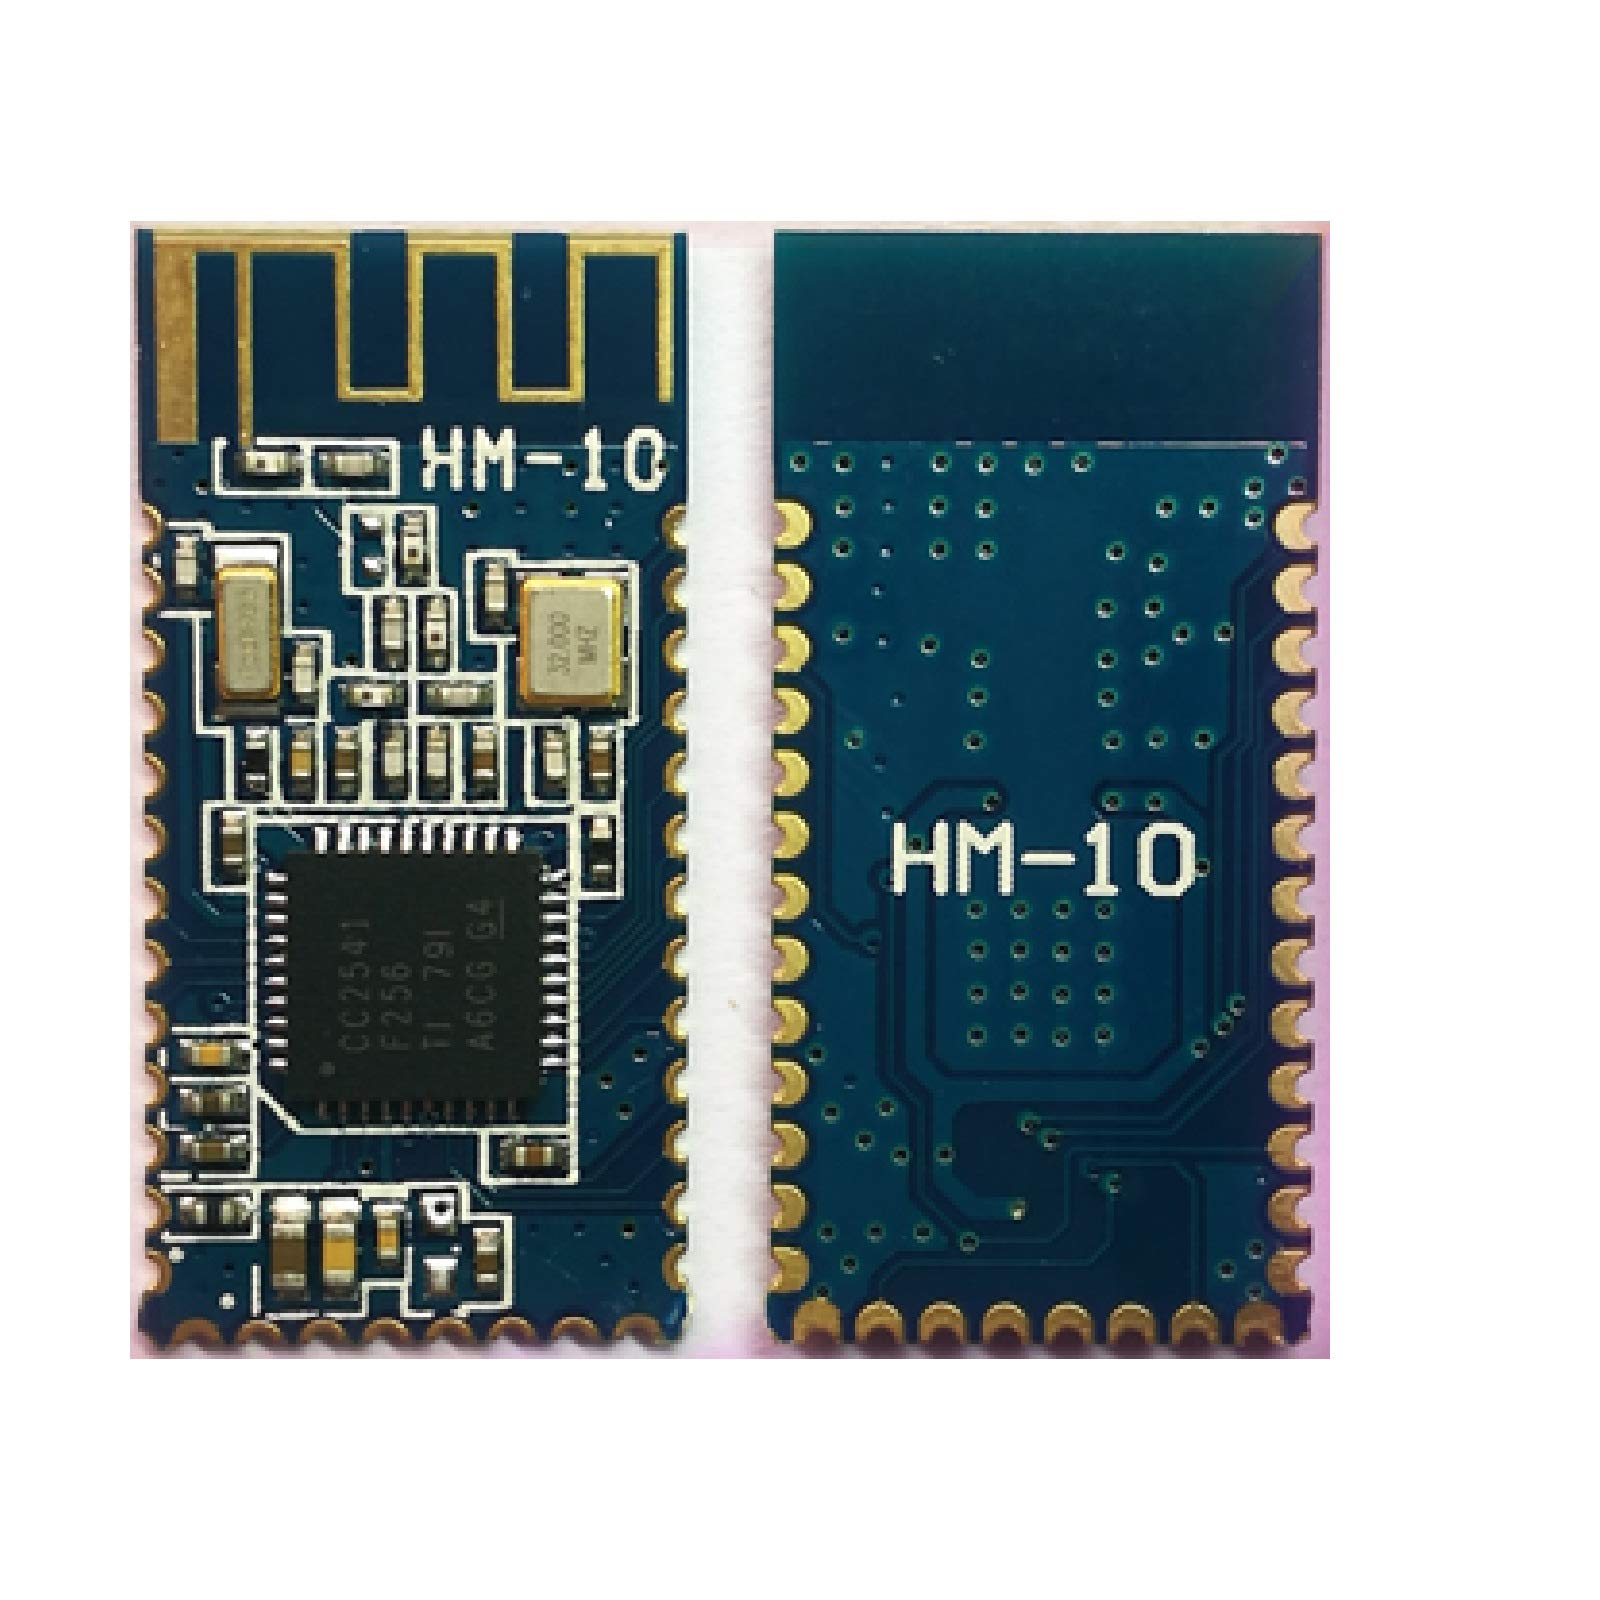 Genuine/Original Huamao BLE Bluetooth 4.0 HM-10 Serial Wireless Module Arduino Android iOS (2 Pieces, HM-10) by Star Mars